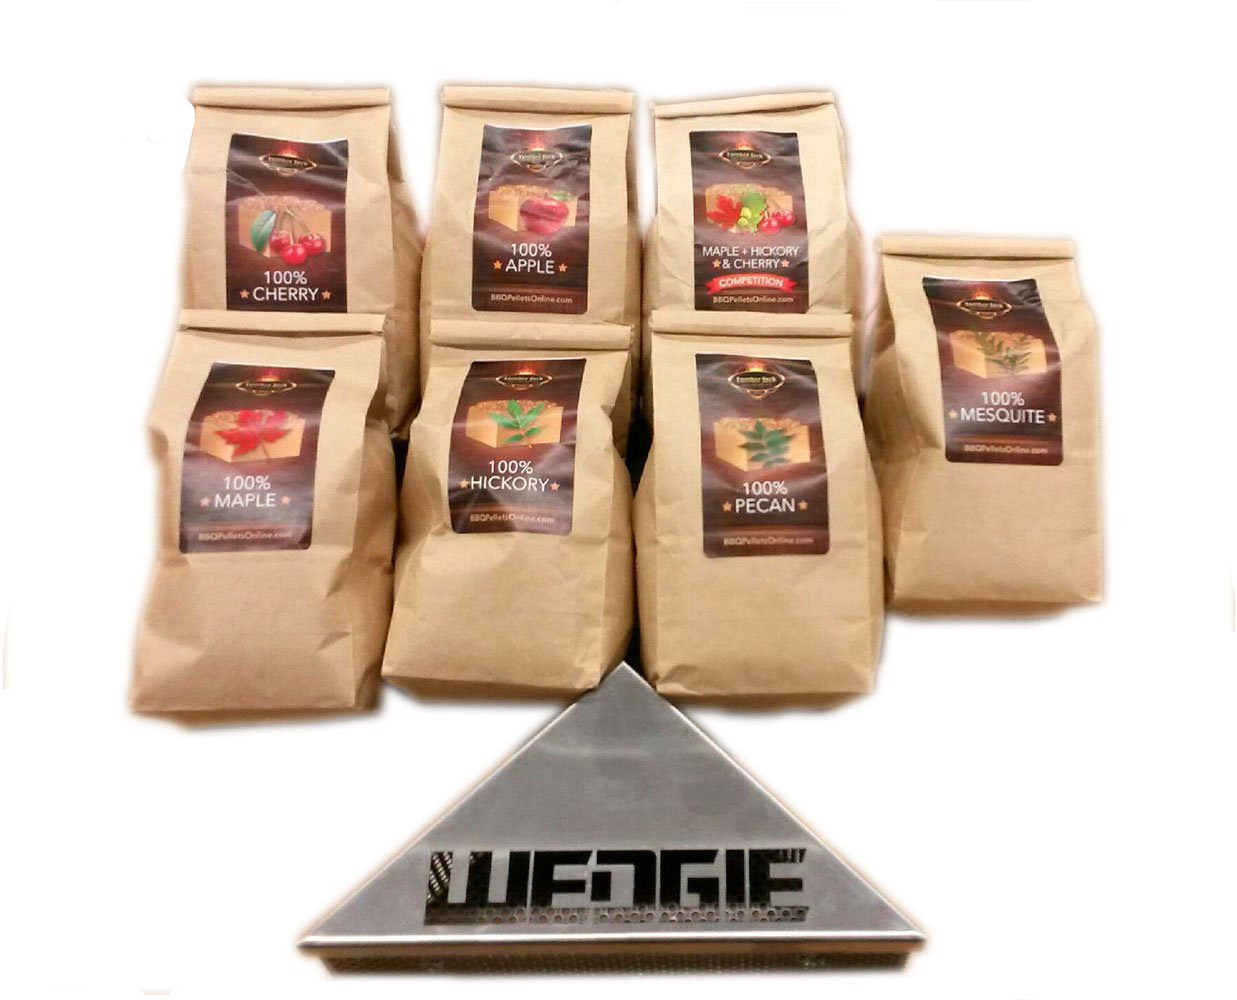 Smokin Wedgie with Lumber Jack BBQ 7 varieties Pack - 1 Lb. Bag - 100% (Apple, Cherry, Pecan, Hickory, Maple-Hickory-Cherry, Mesquite and Maple)